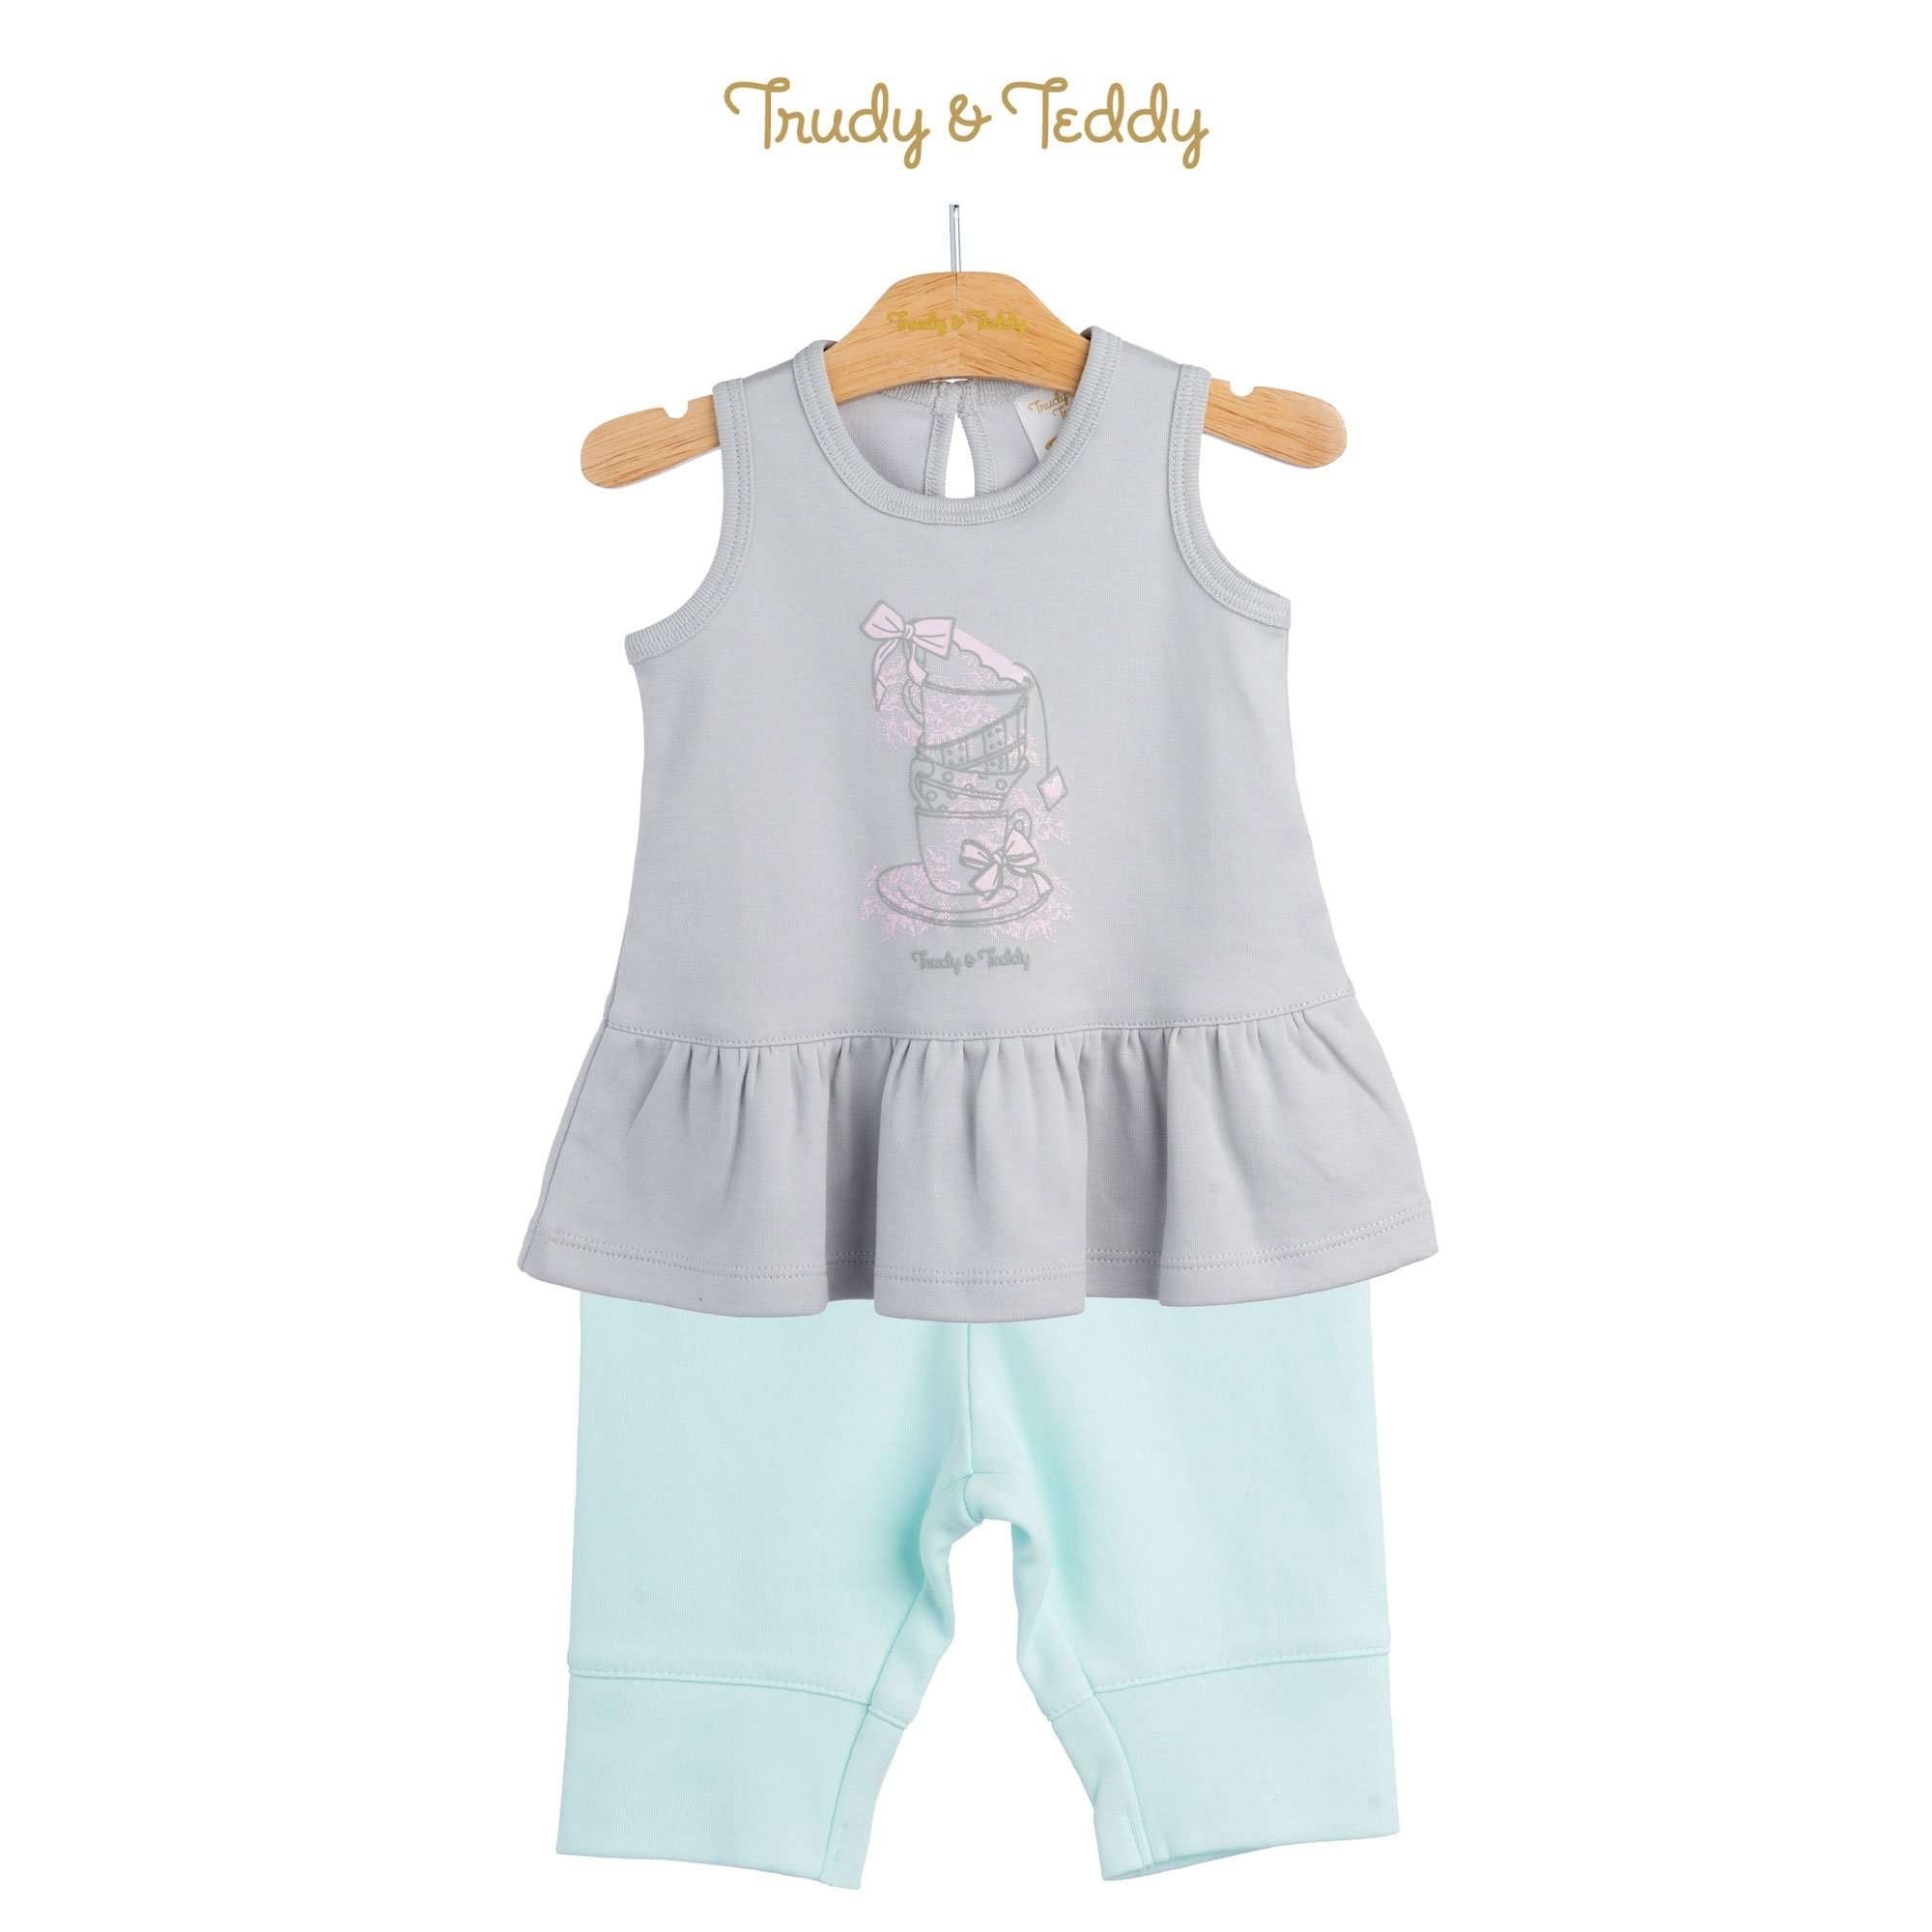 Trudy & Teddy Baby Girl Sleeveless Bermuda Suit 820043-401 : Buy Trudy & Teddy online at CMG.MY